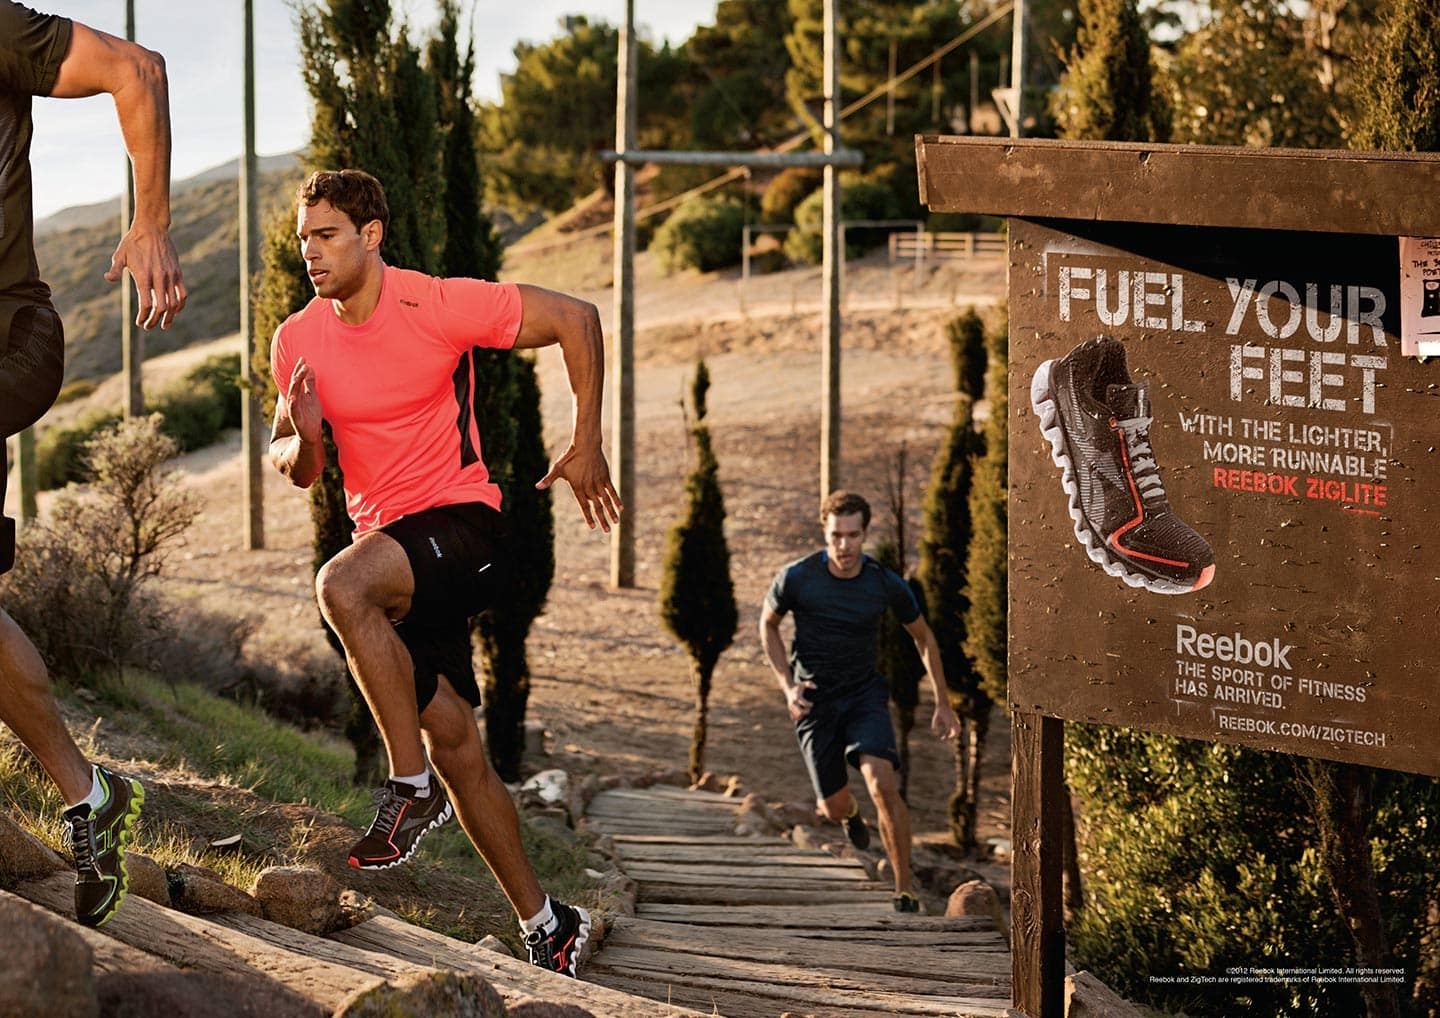 Outdoor Stairs Run Men Reebok Advertisment Fuel Your Feet